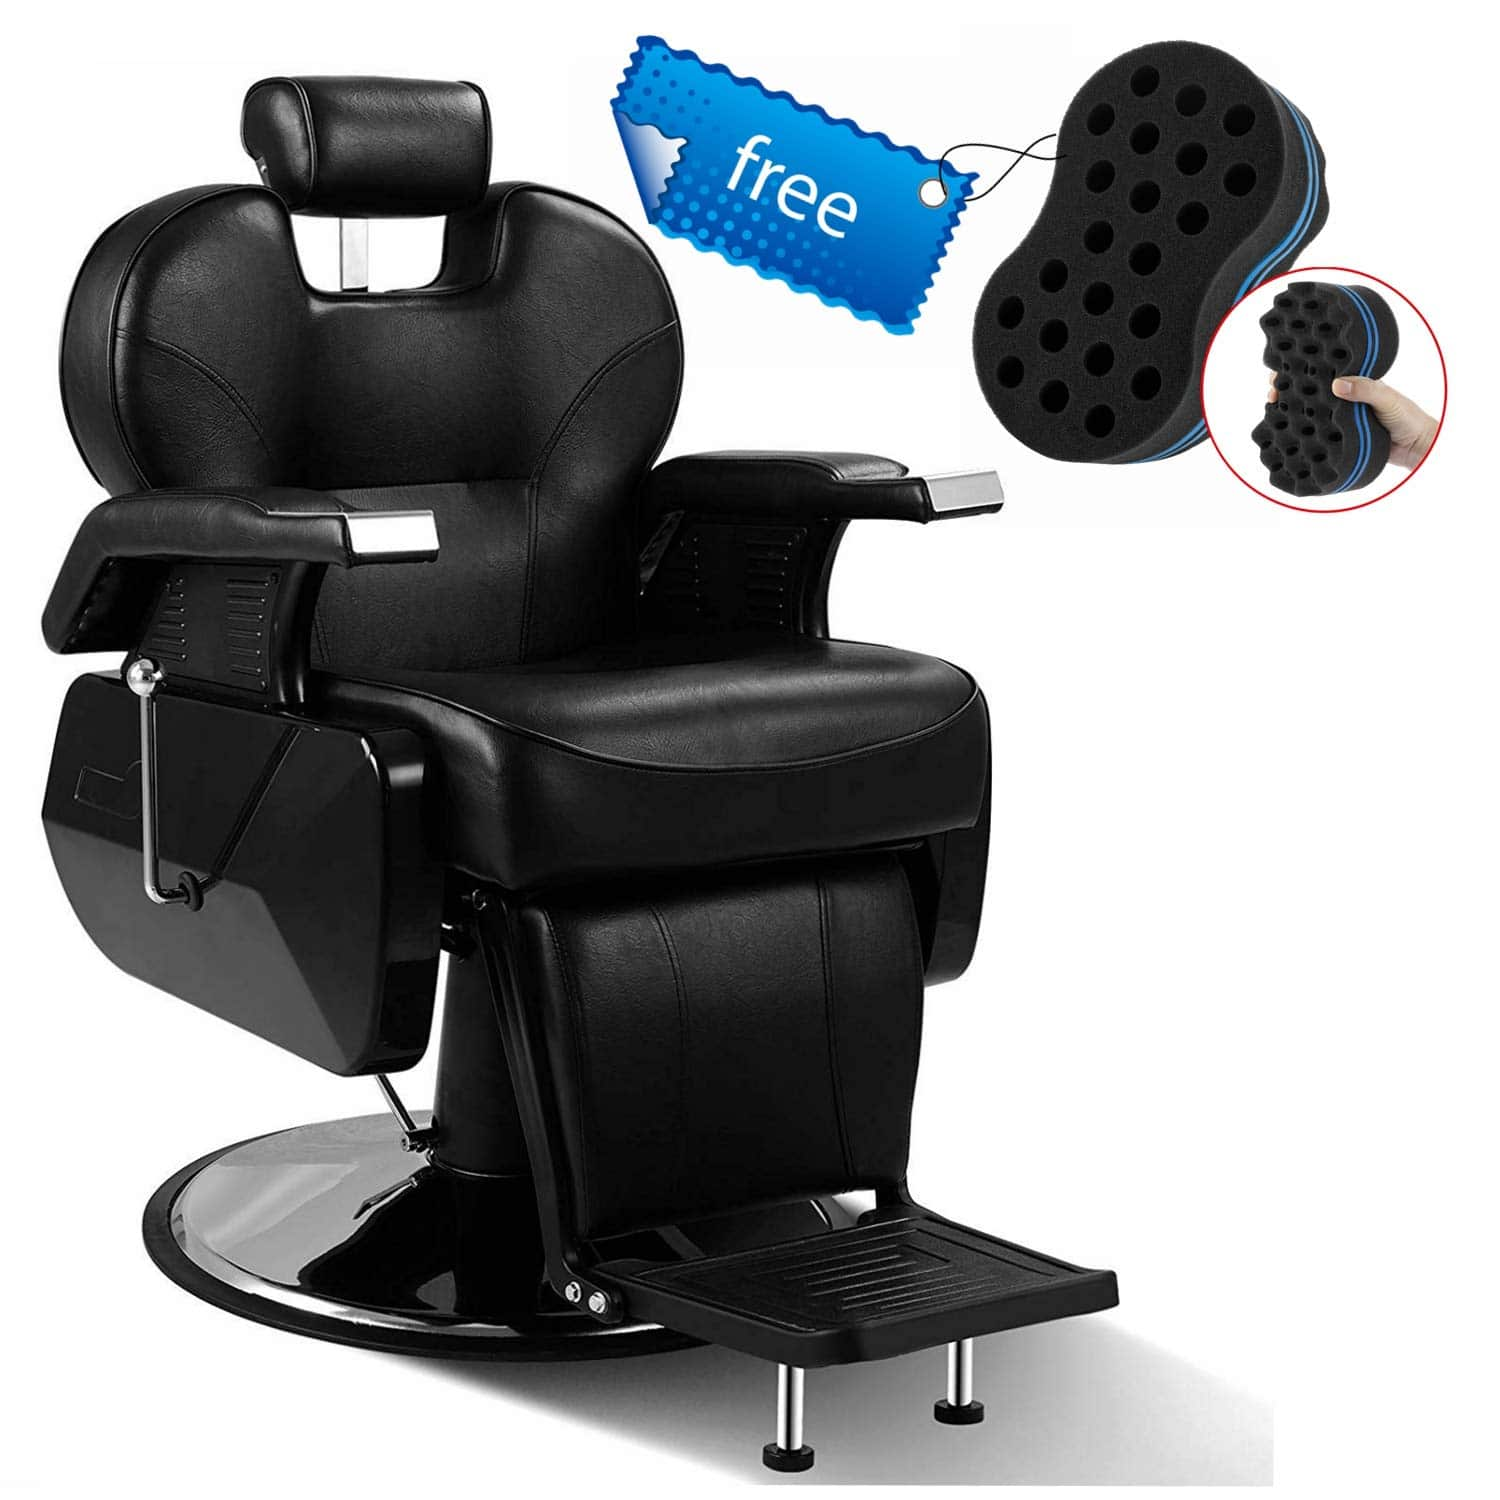 Black All Purpose Hydraulic Recline Barber Chair with Free Twist Hair Brush Sponge Salon Beauty Styling Chair for Beauty Shop